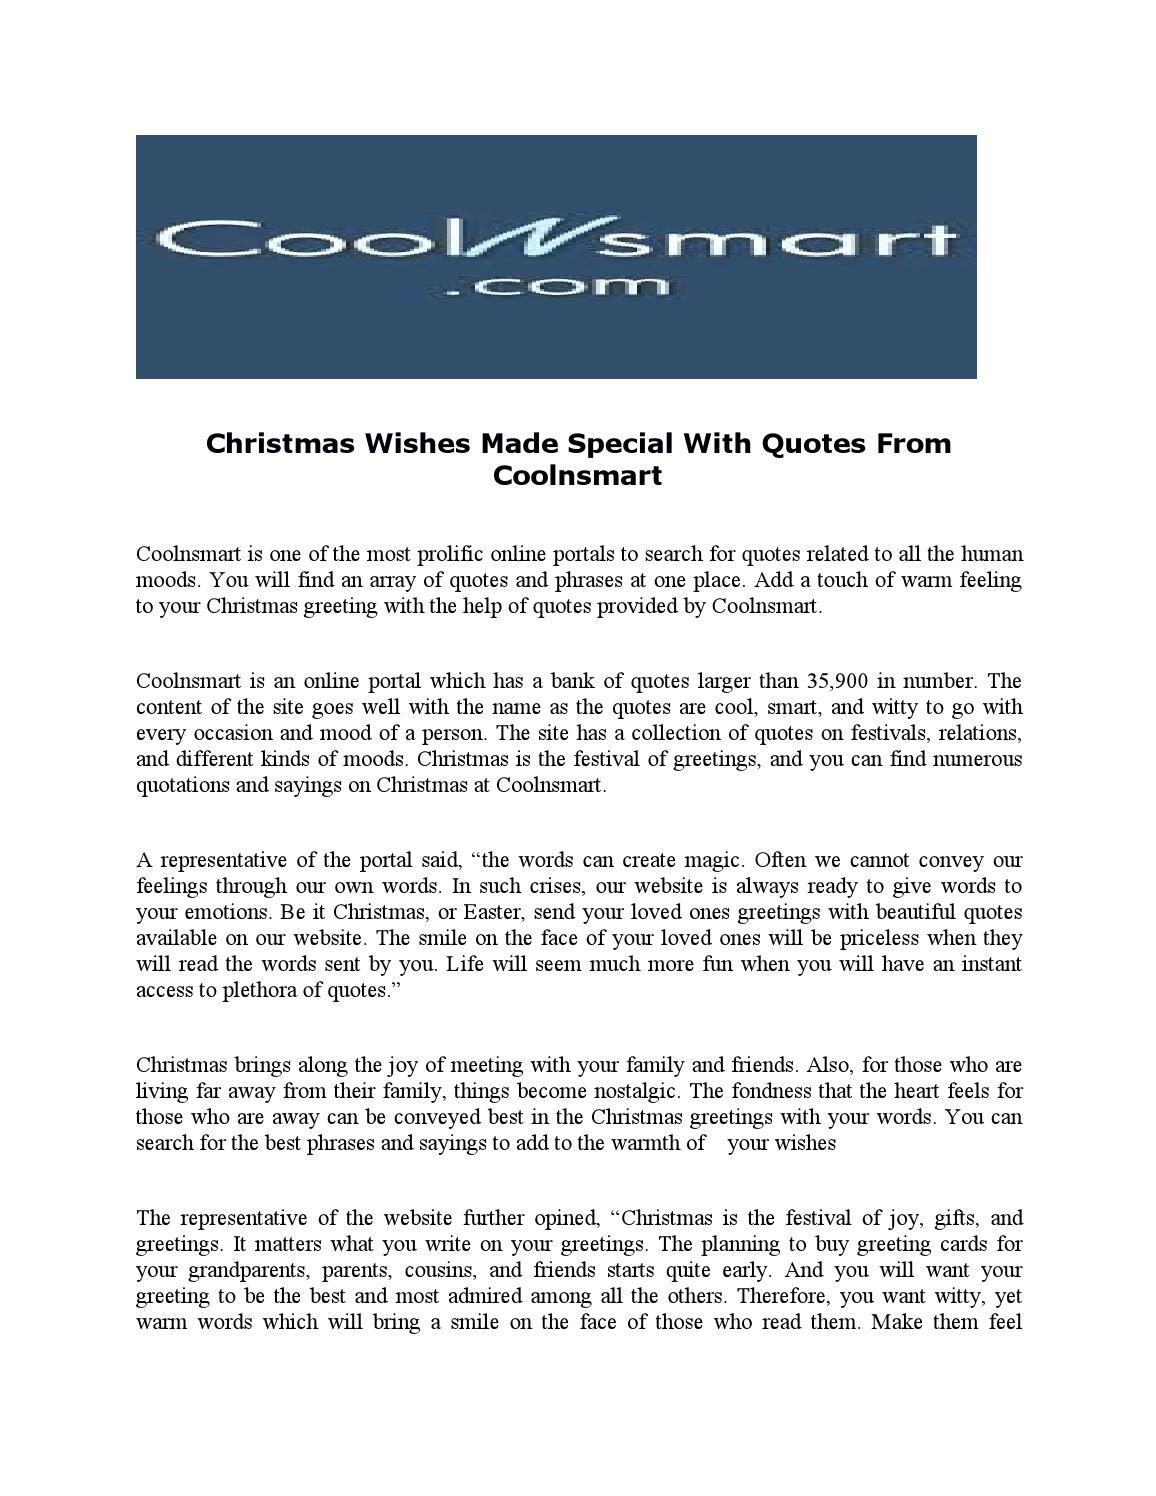 christmas wishes made special quotes from coolnsmart by